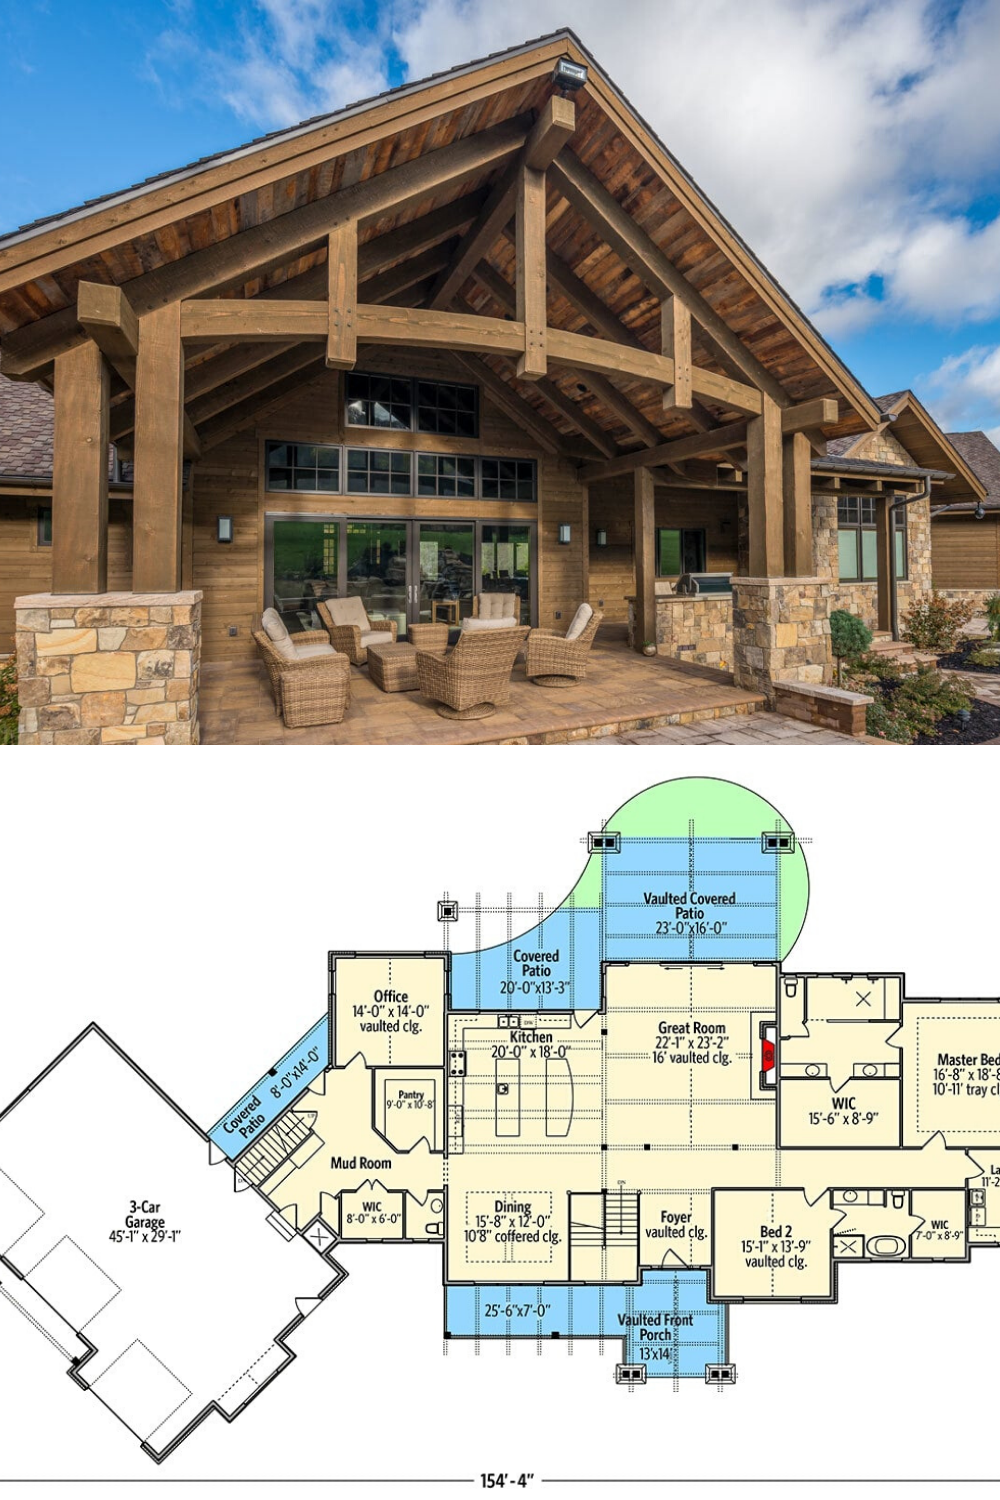 3 Bedroom Single Story Mountain Ranch Home With Lower Level Expansion Floor Plan Lake House Plans Mountain Ranch House Plans Craftsman House Plans